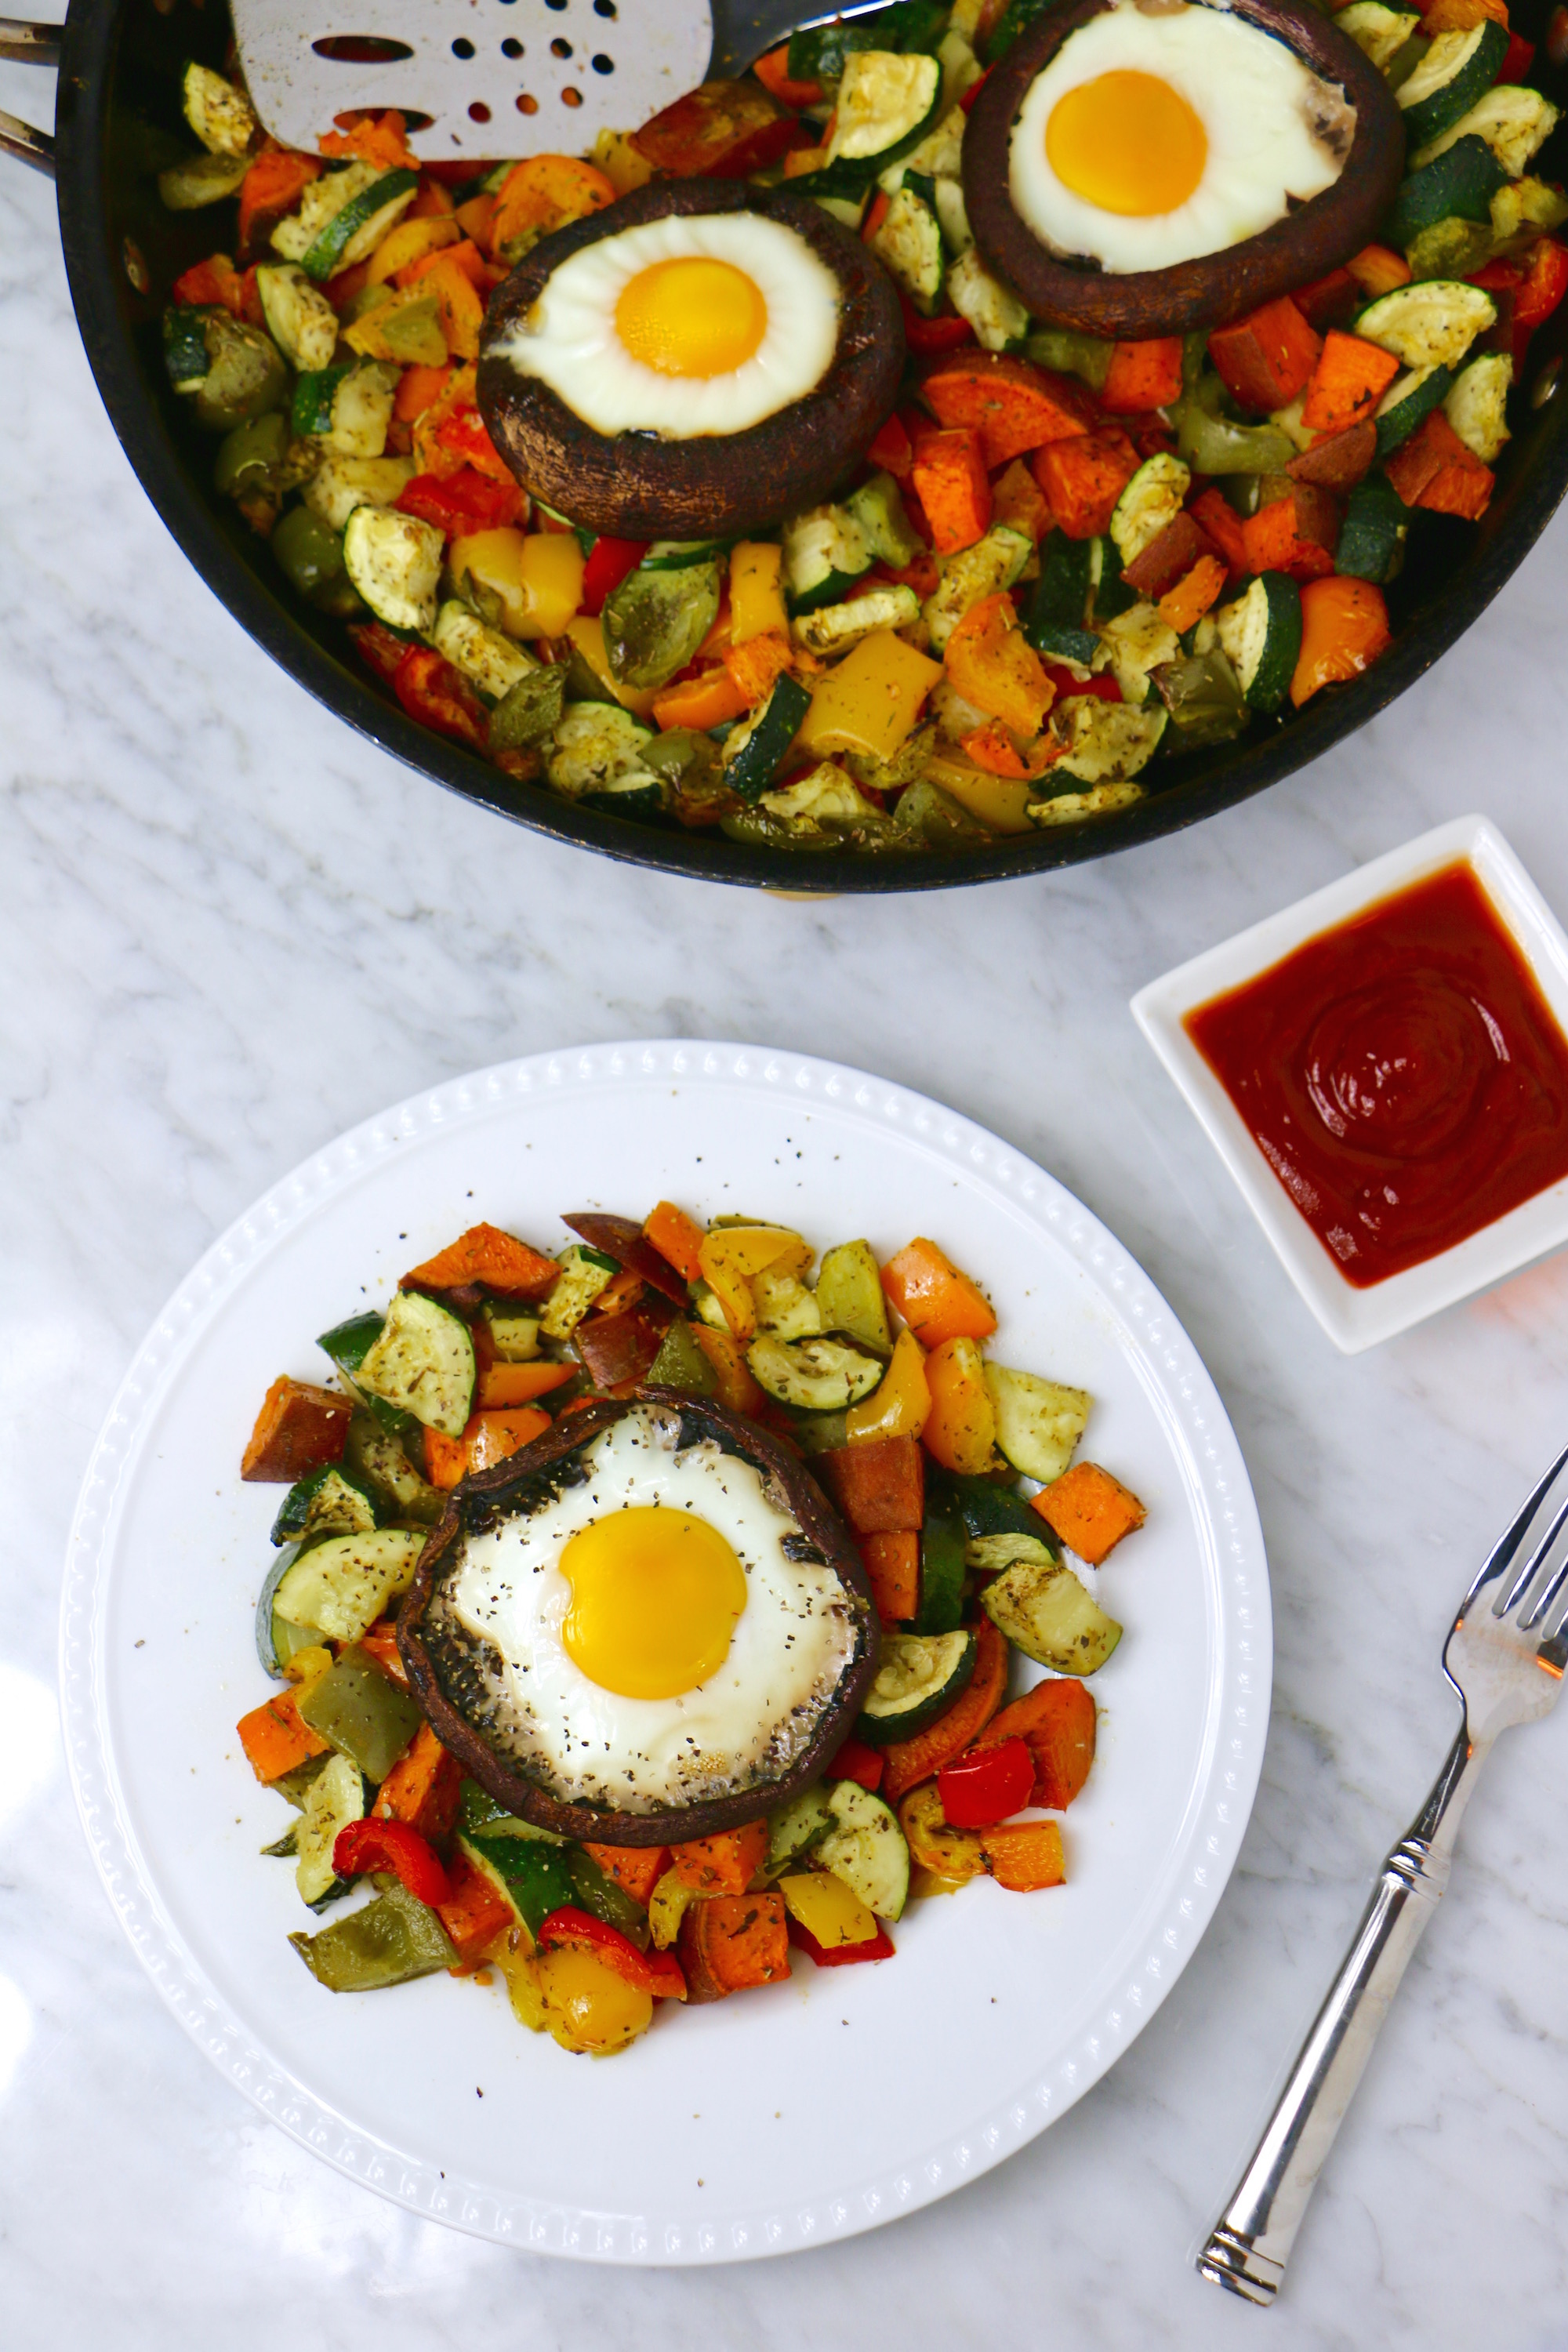 Mushroom Egg Bake with Roasted Veggies